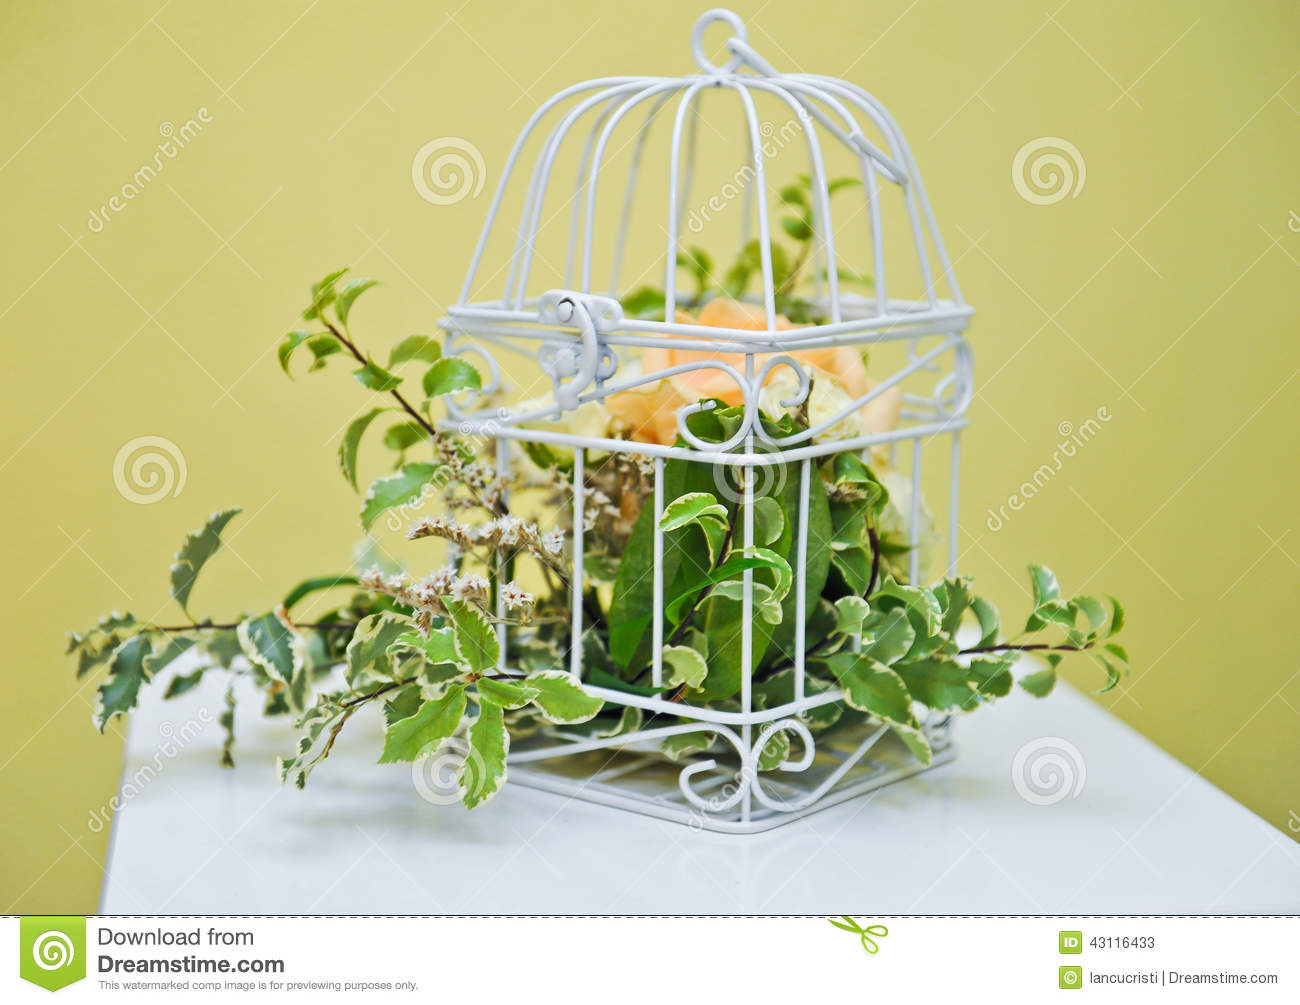 d coration avec la plante verte dans une cage oiseaux photo stock image 43116433. Black Bedroom Furniture Sets. Home Design Ideas